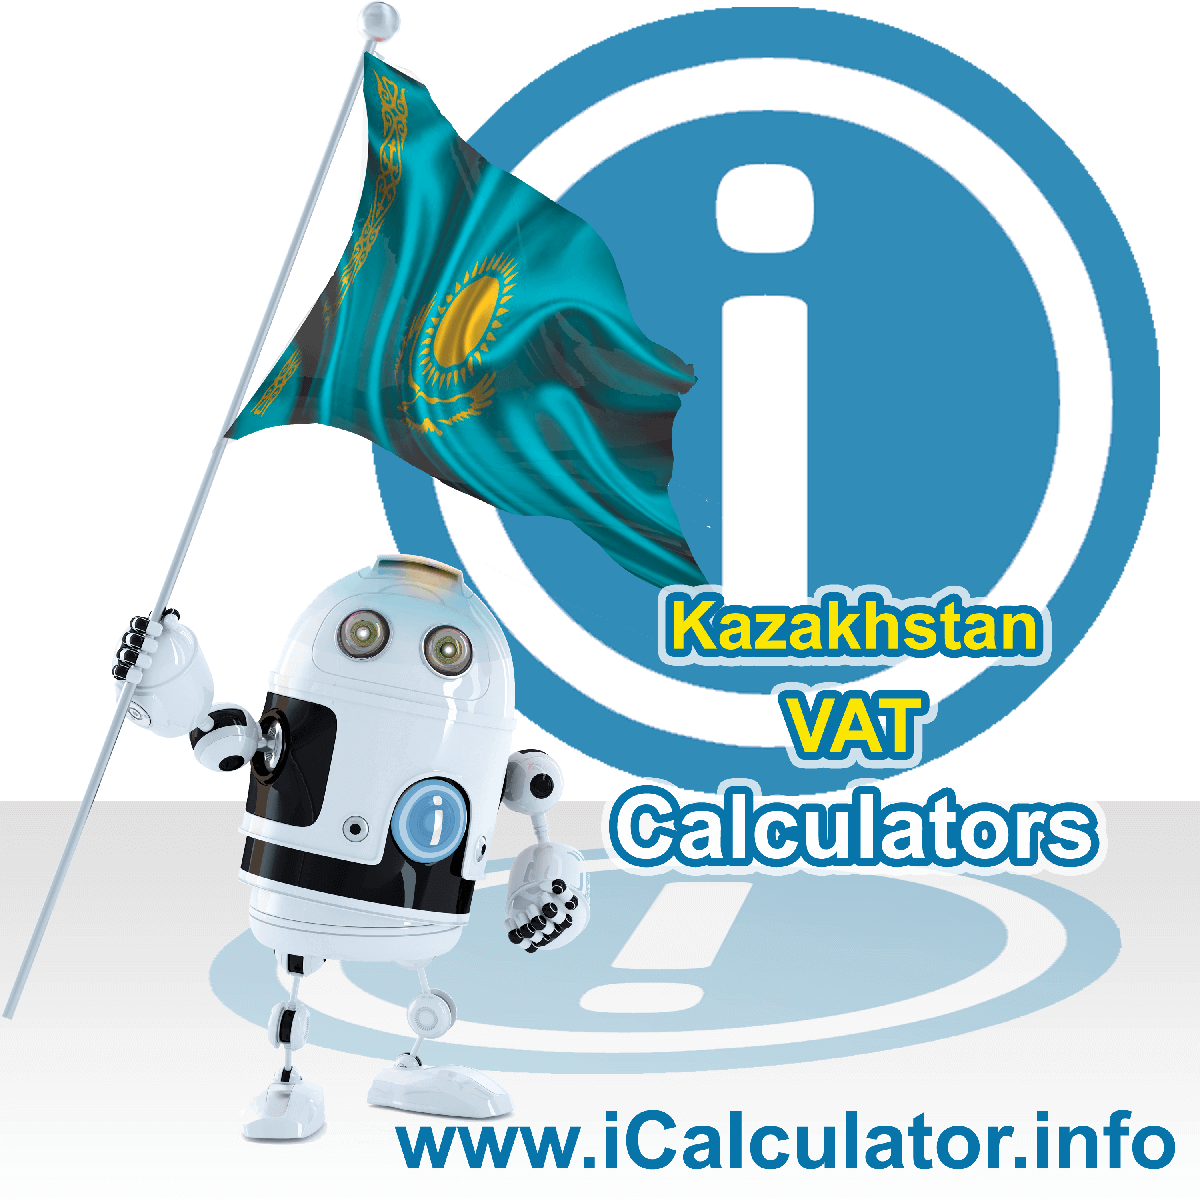 Kazakhstan VAT Calculator. This image shows the Kazakhstan flag and information relating to the VAT formula used for calculating Value Added Tax in Kazakhstan using the Kazakhstan VAT Calculator in 2020